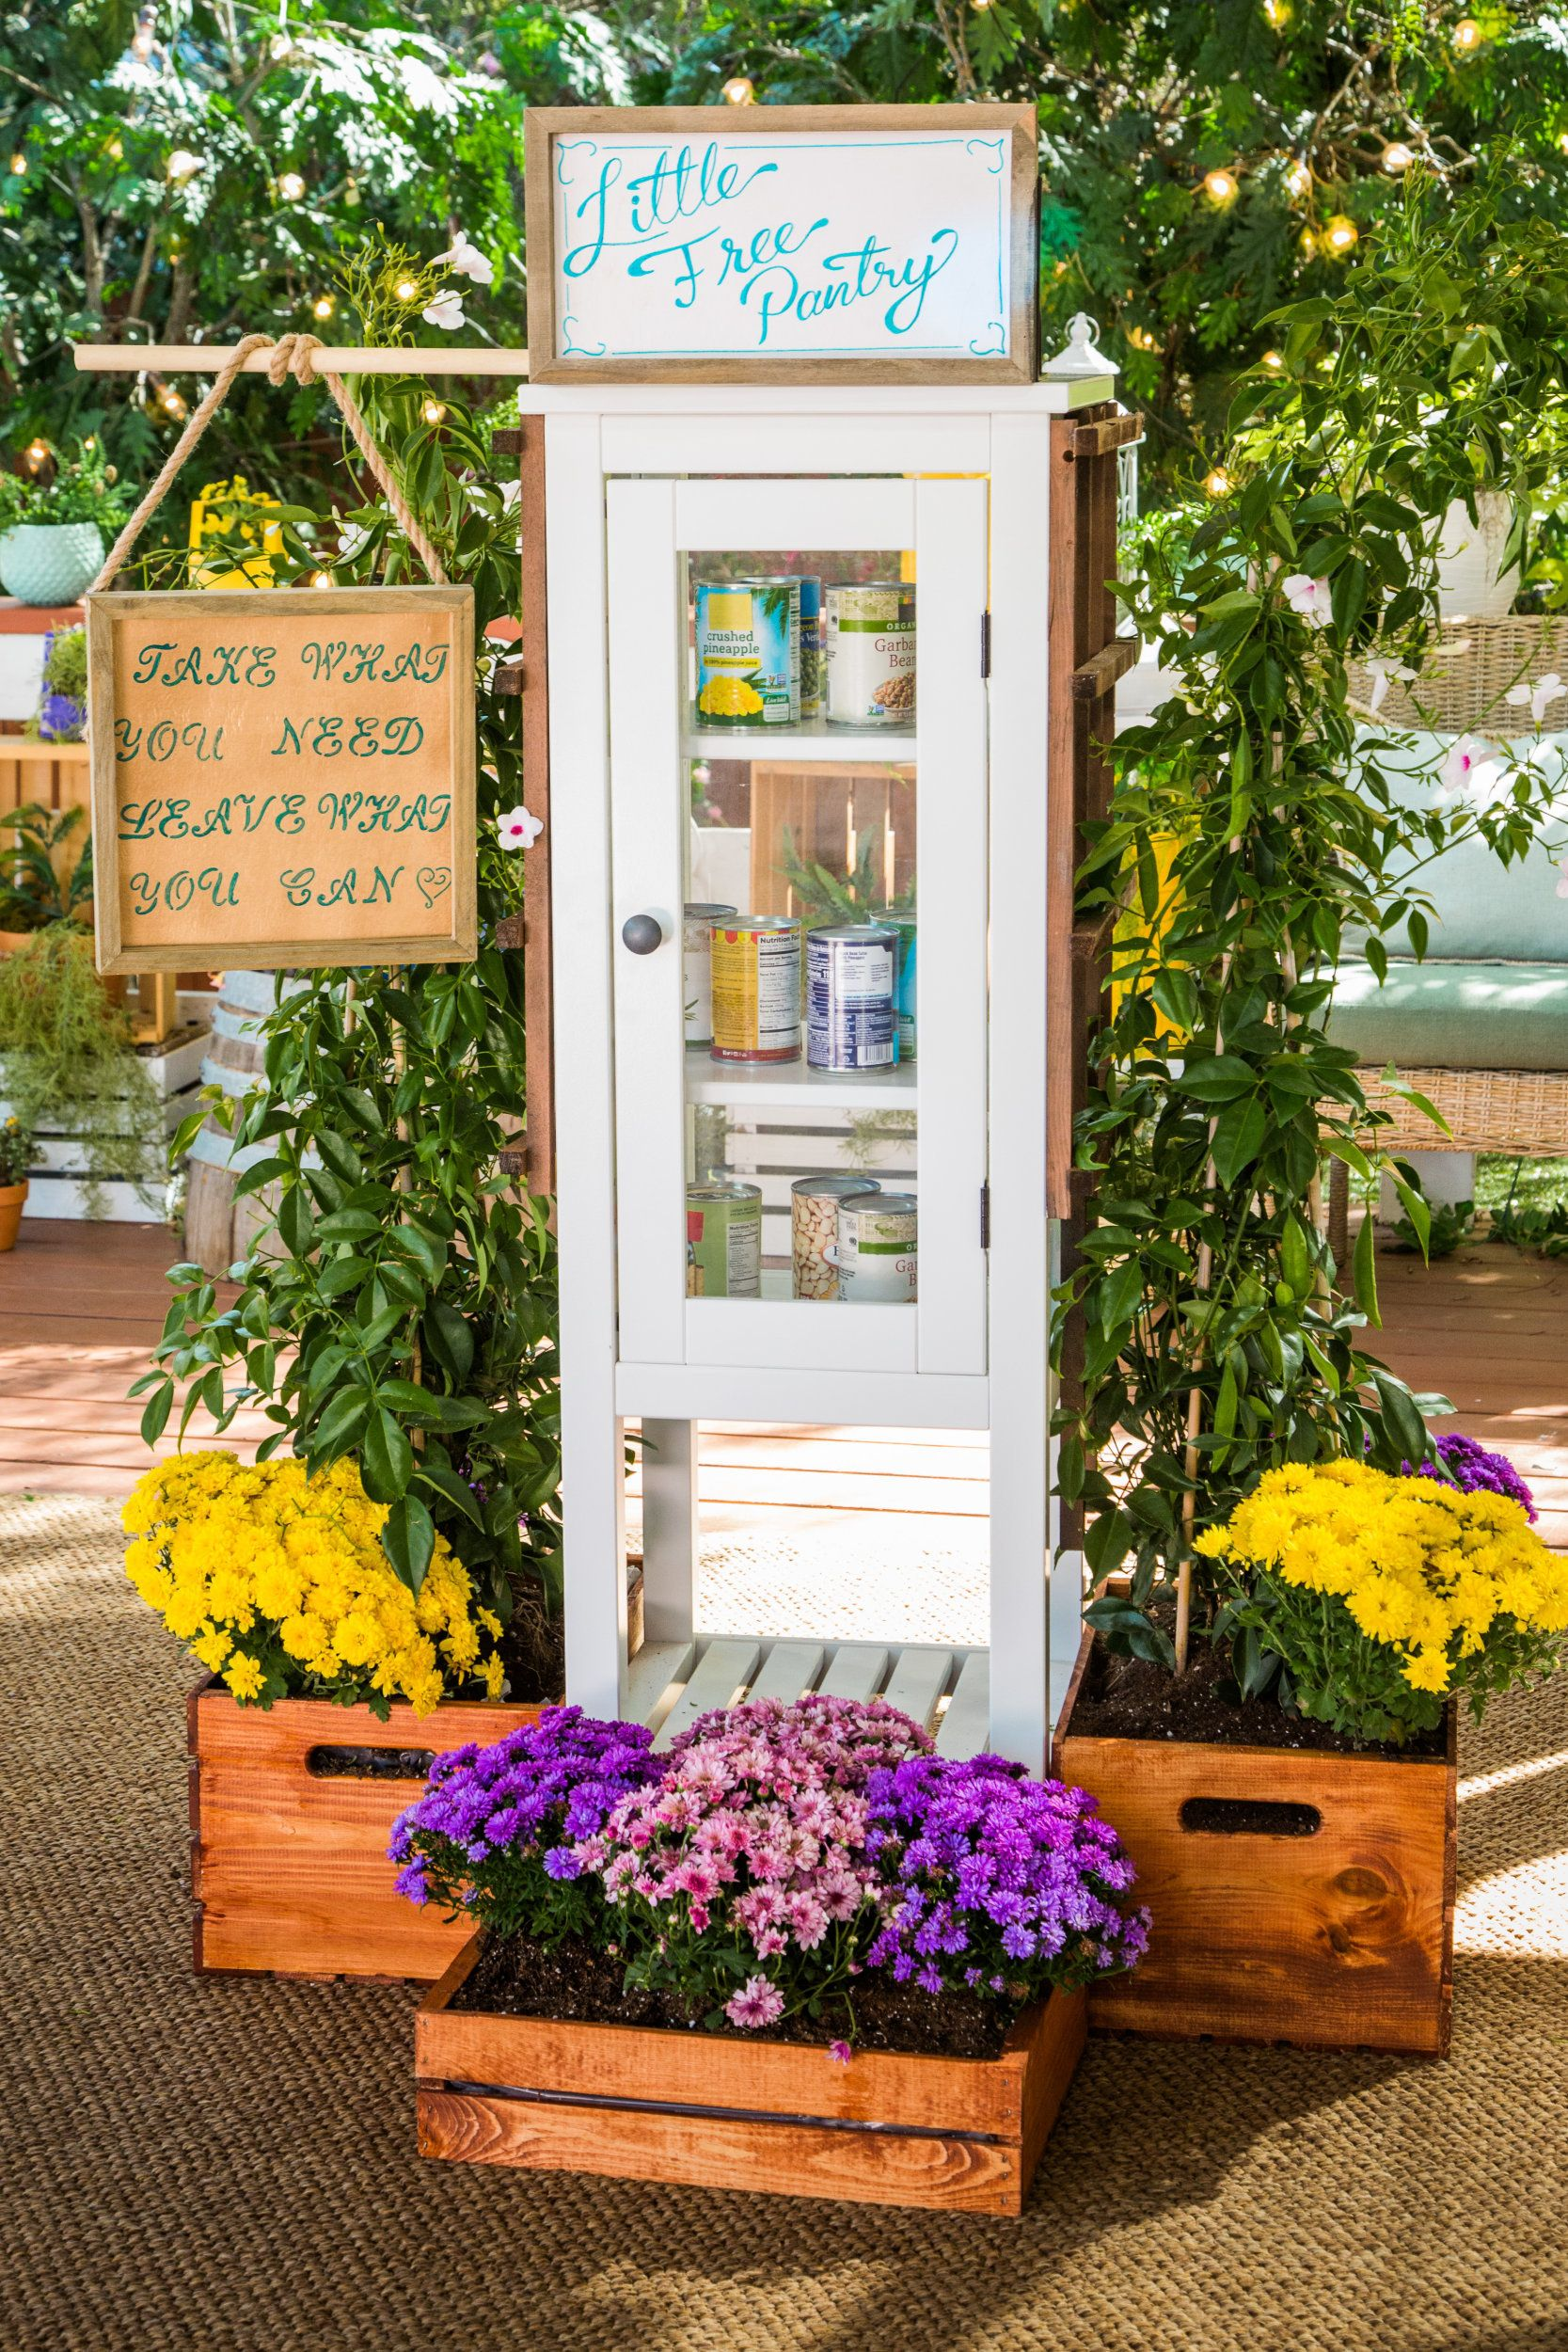 DIY Little Free Pantry in 2020 Little free pantry